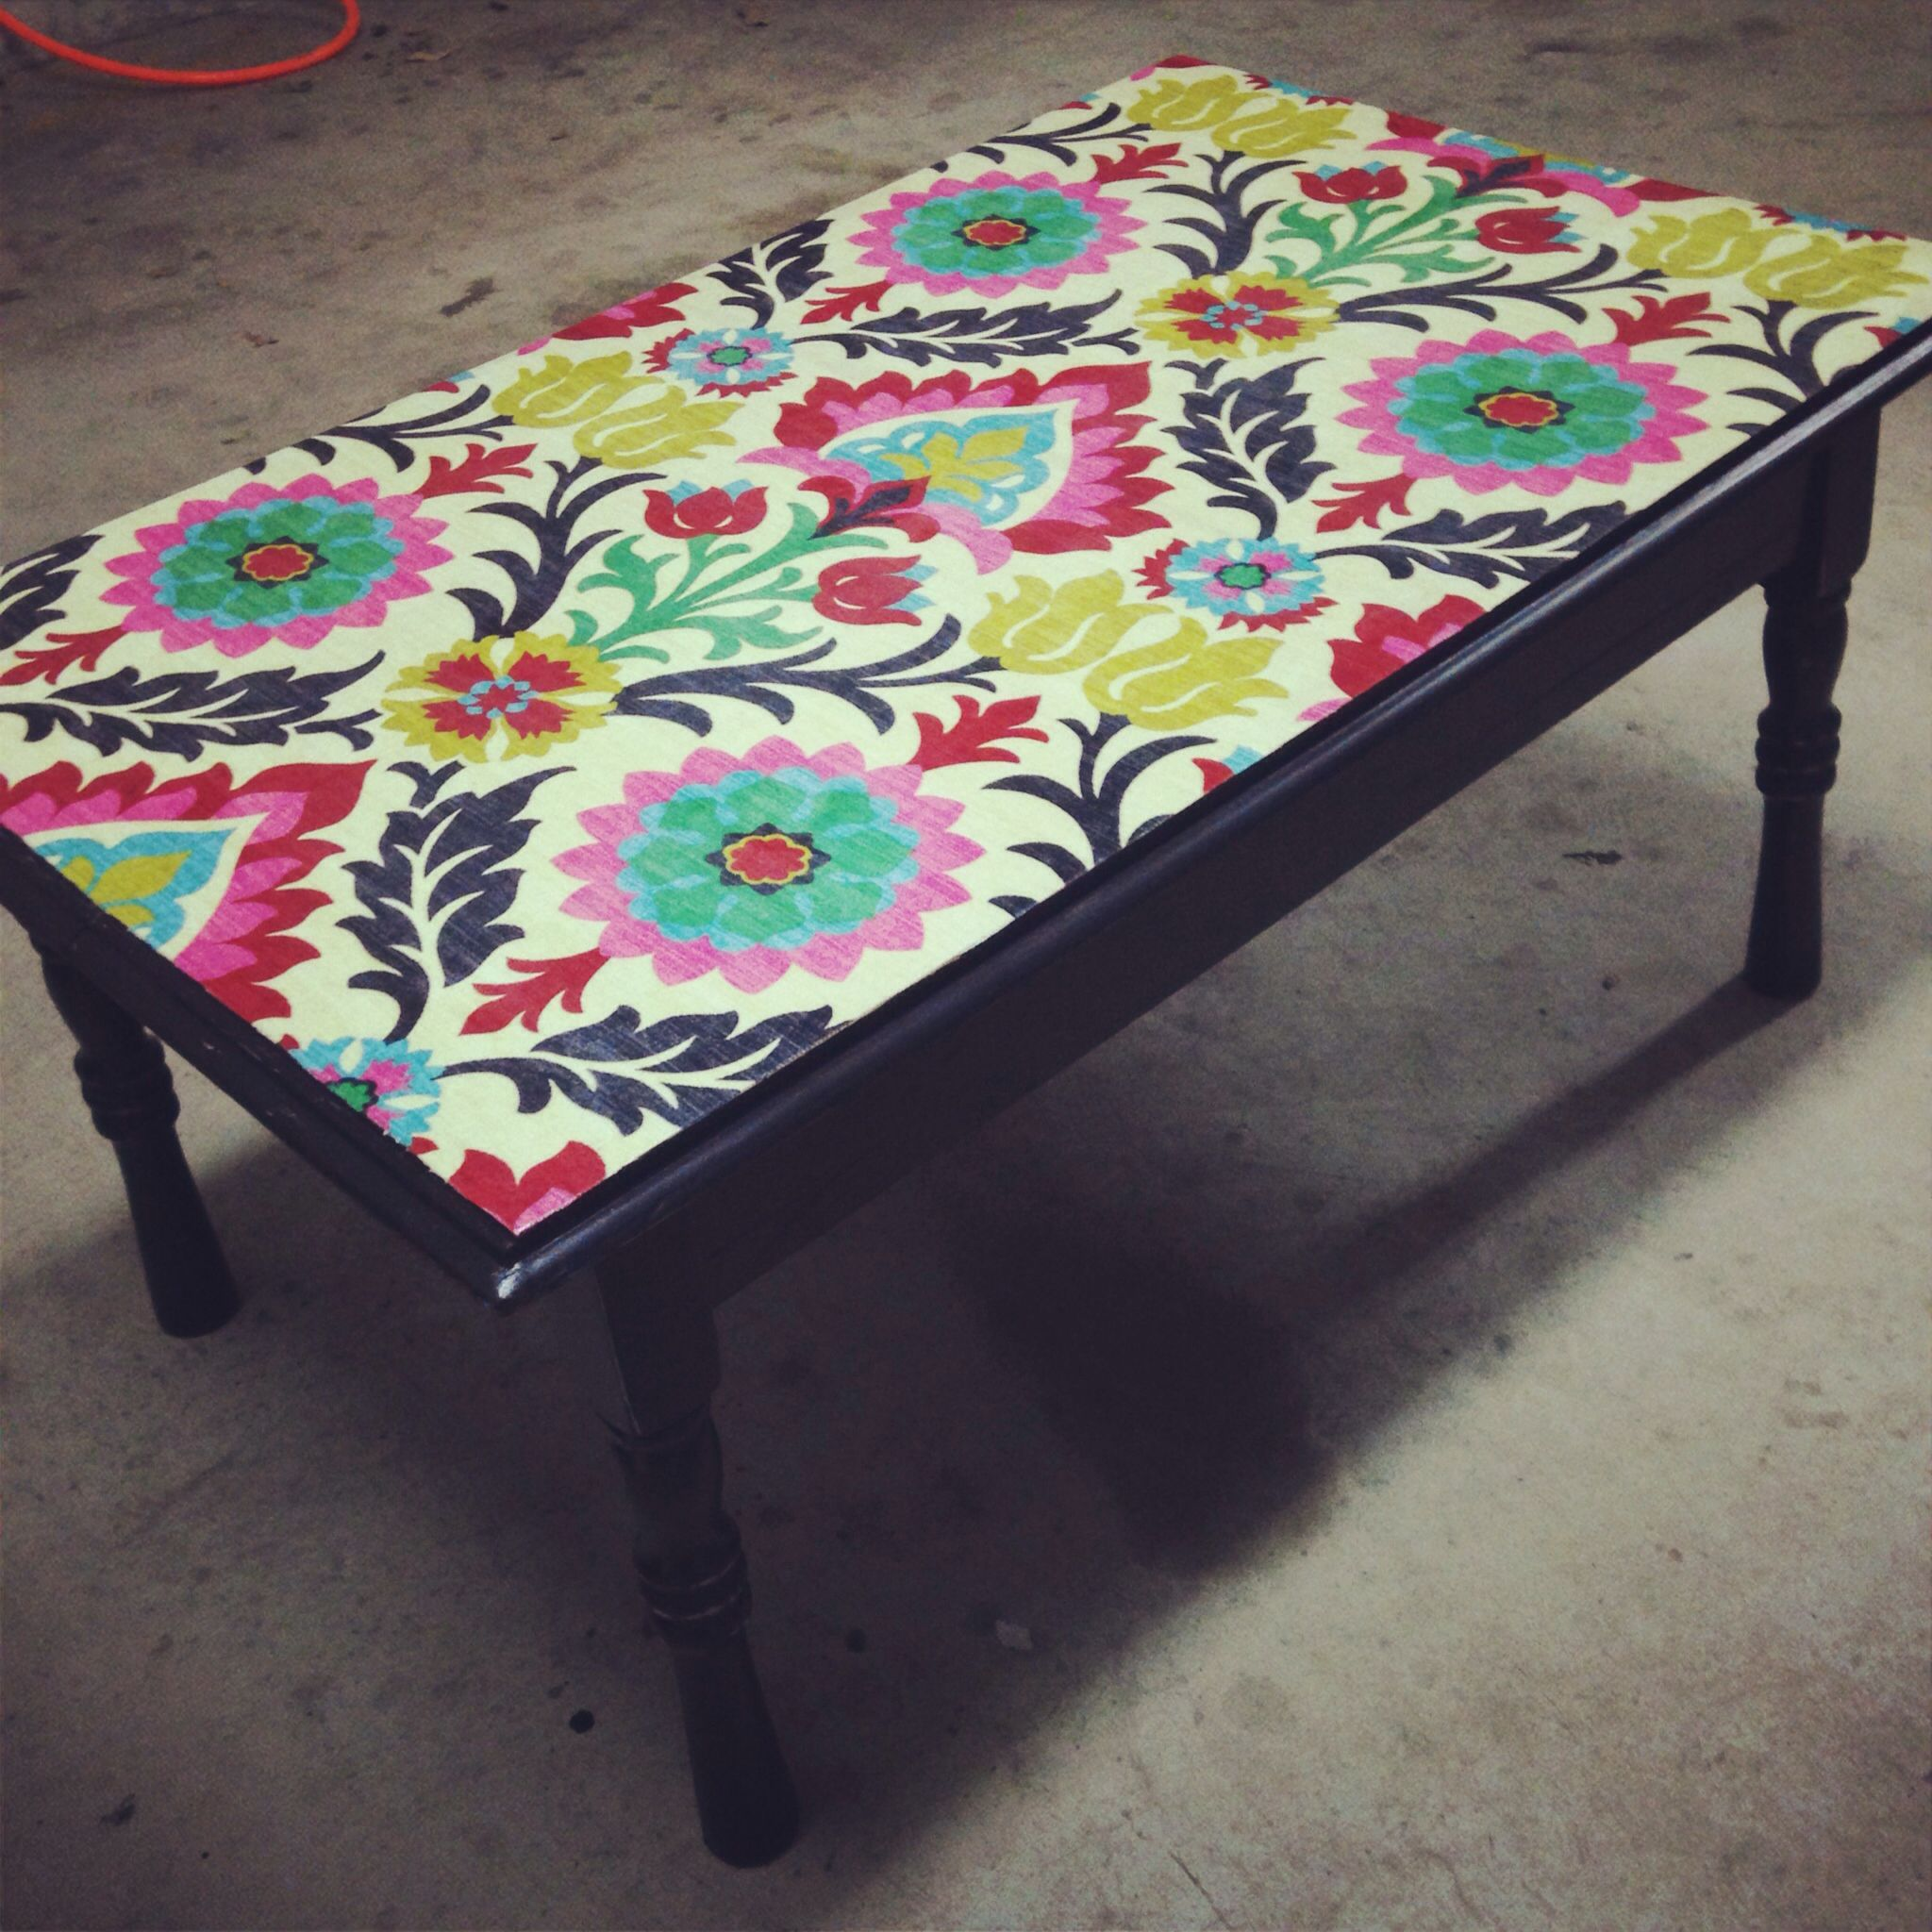 Mod Podge decoupage fabric onto a castaway coffee table Preserve